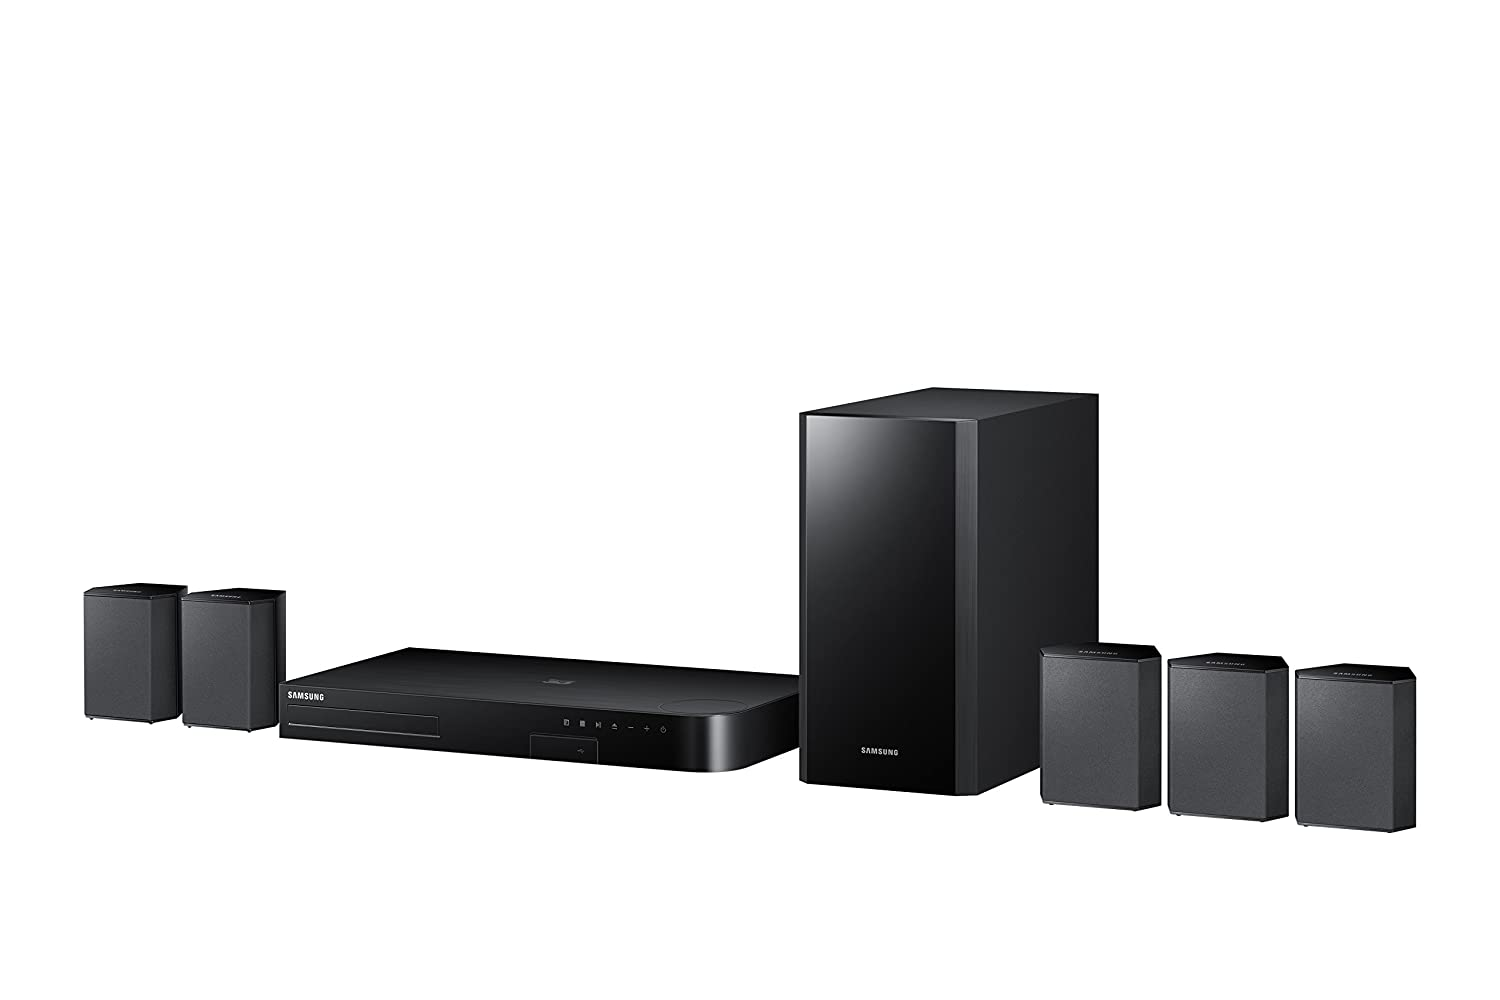 cheap surround sound system 2 systems under 200 each on amazon bgr. Black Bedroom Furniture Sets. Home Design Ideas